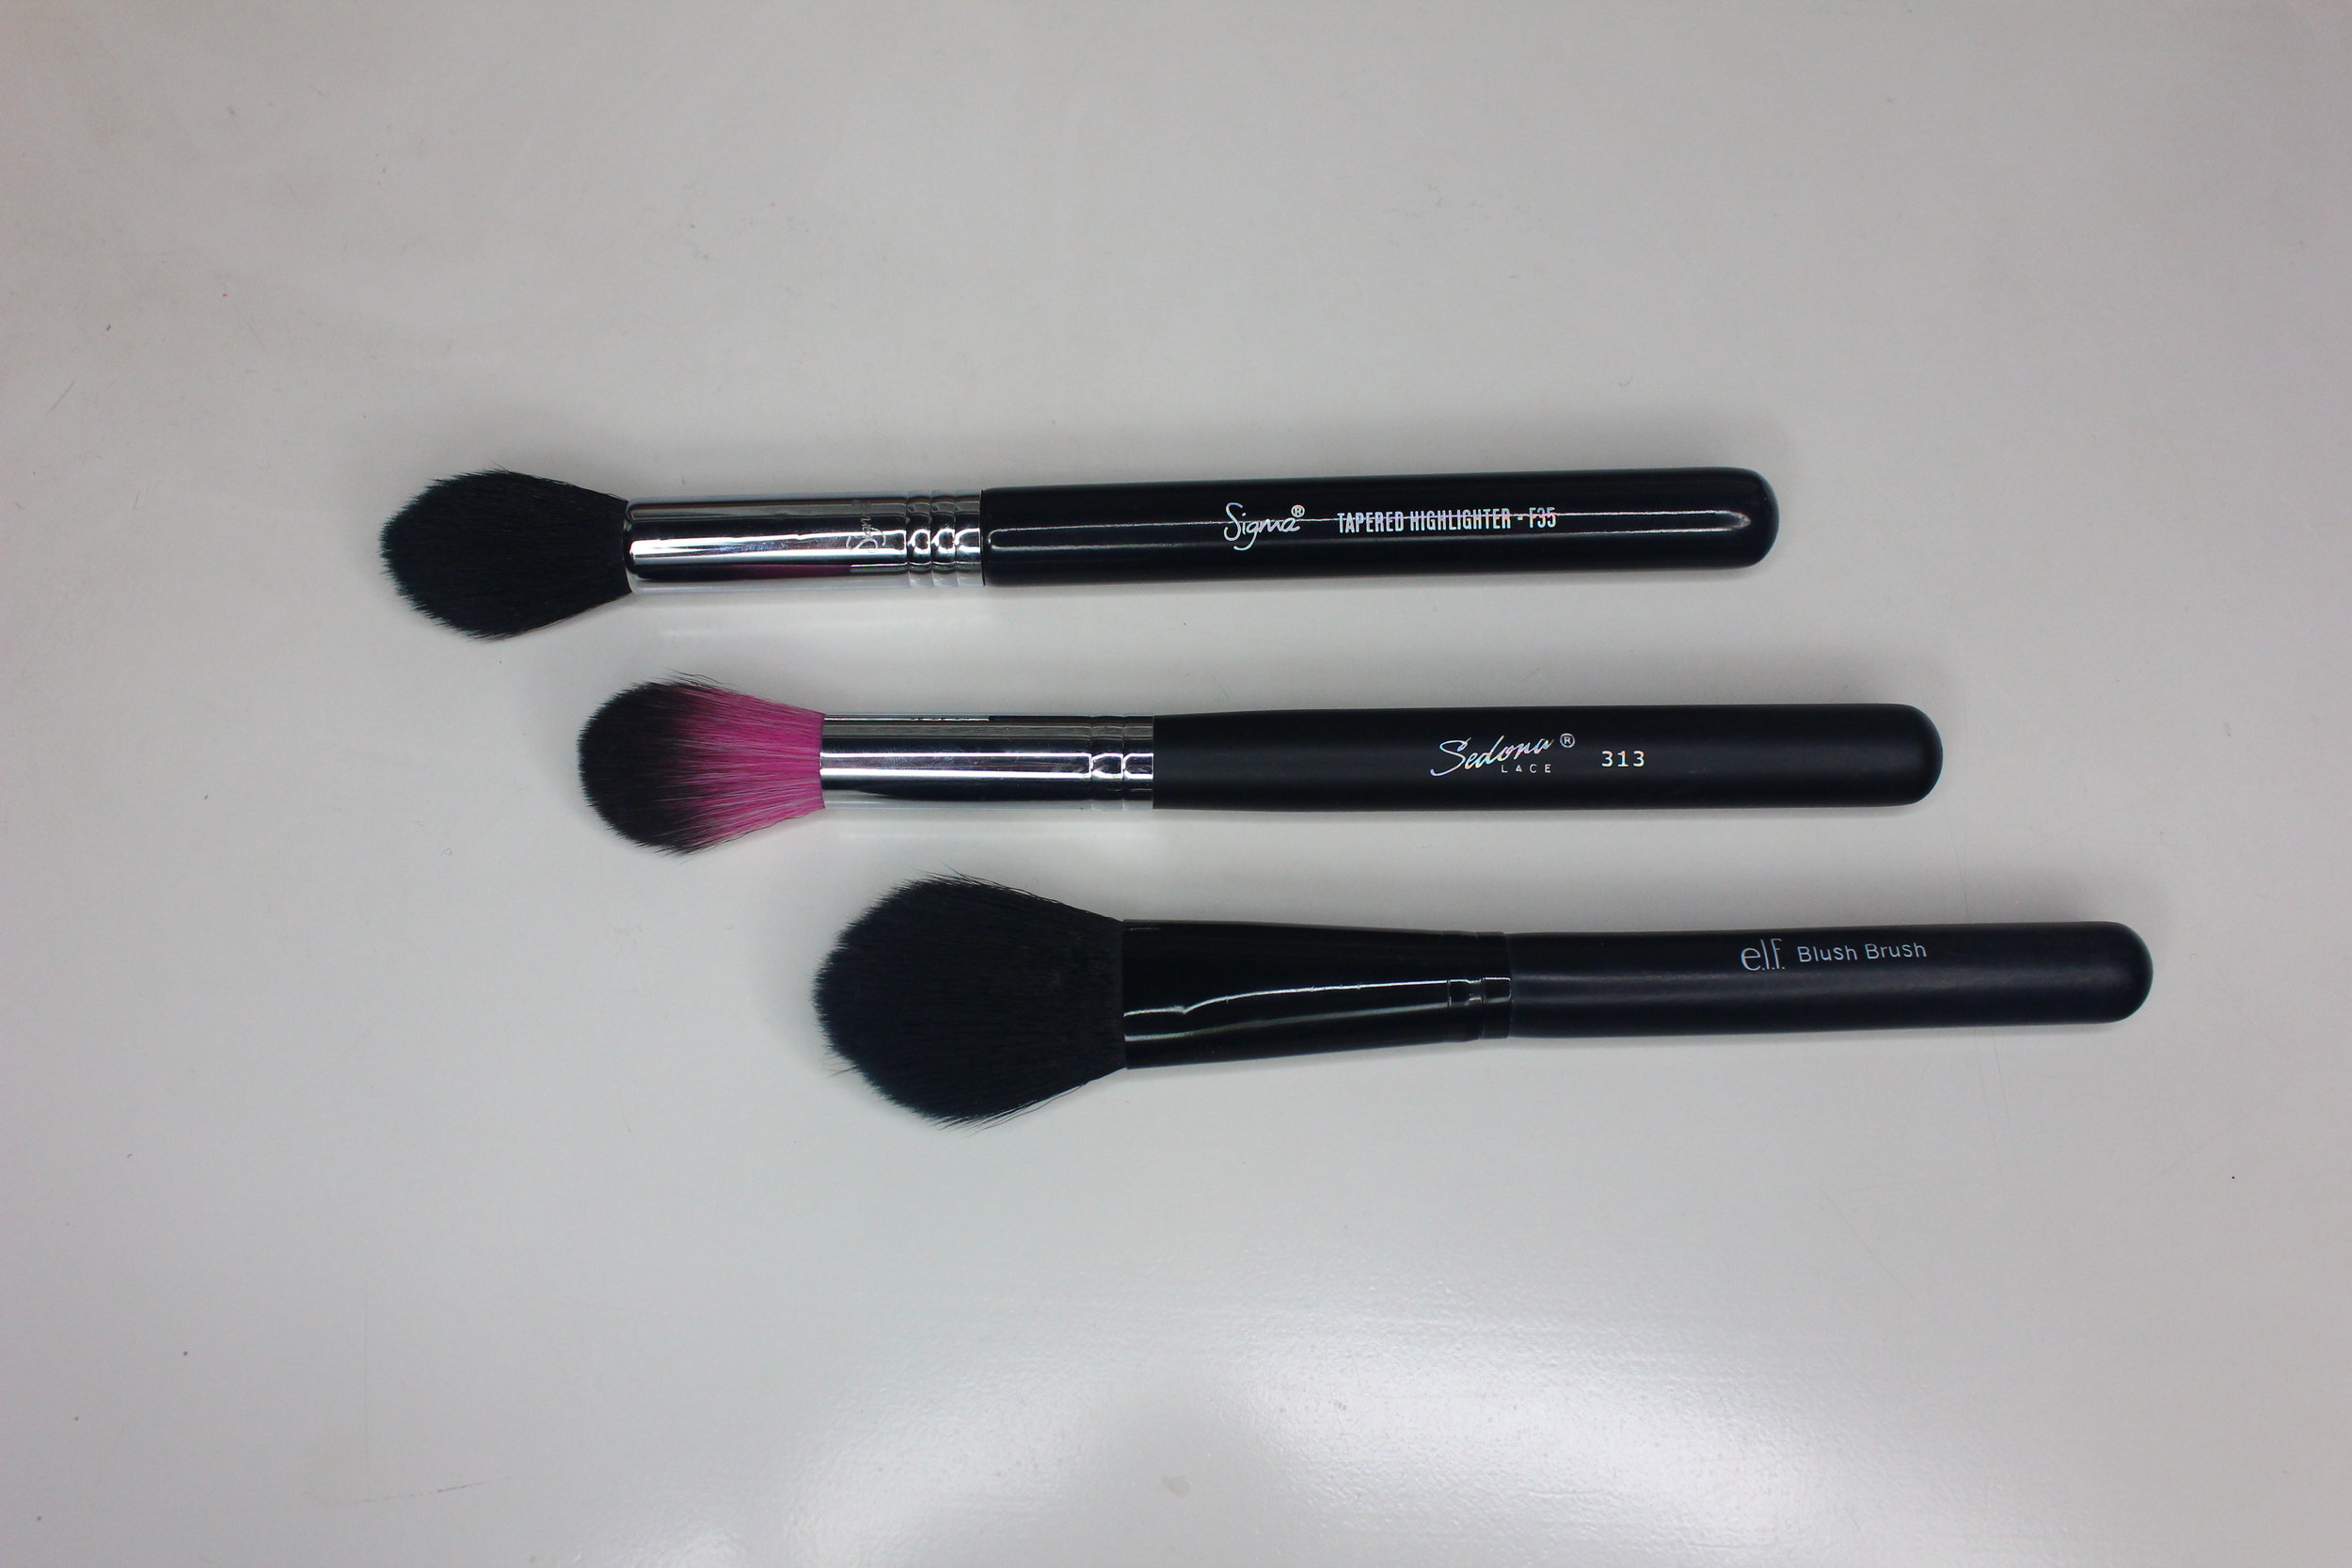 Sedona Lace PrettyLilMzGrace brush set - 313 brush comparisons